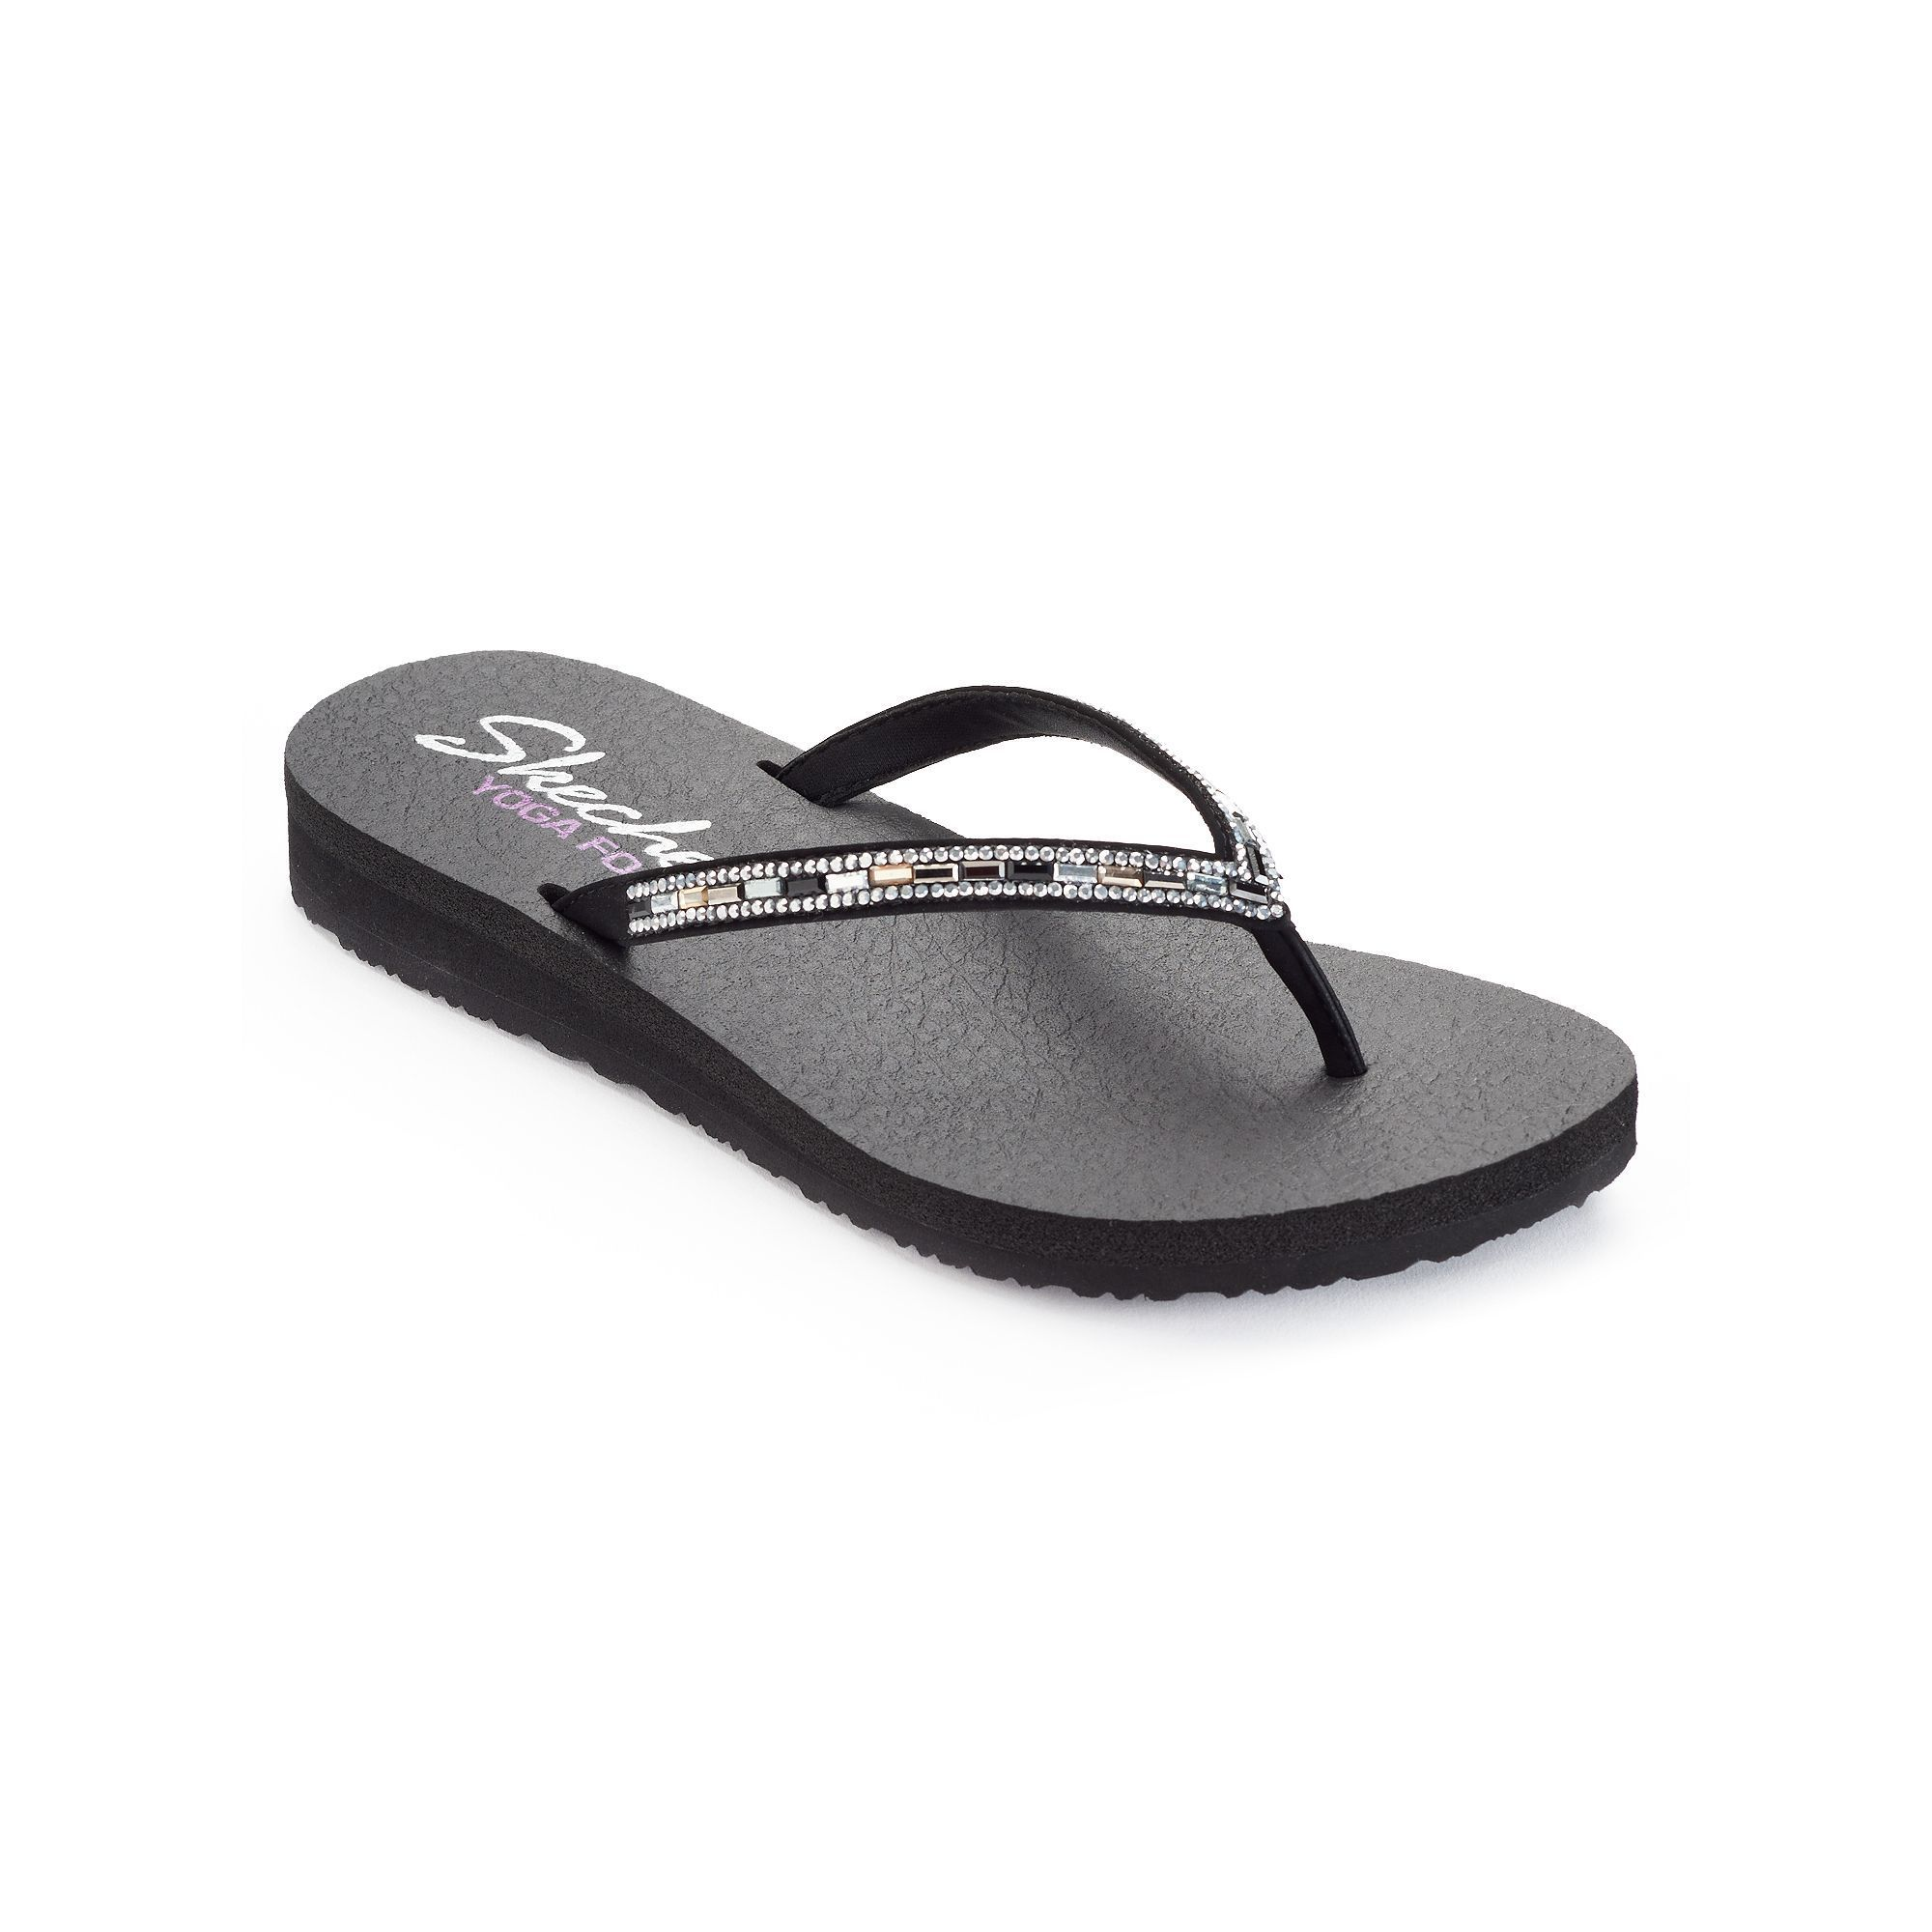 199d0e907dec Skechers Meditation Desert Women s Rhinestone Yoga Mat Wedge Flip-Flops